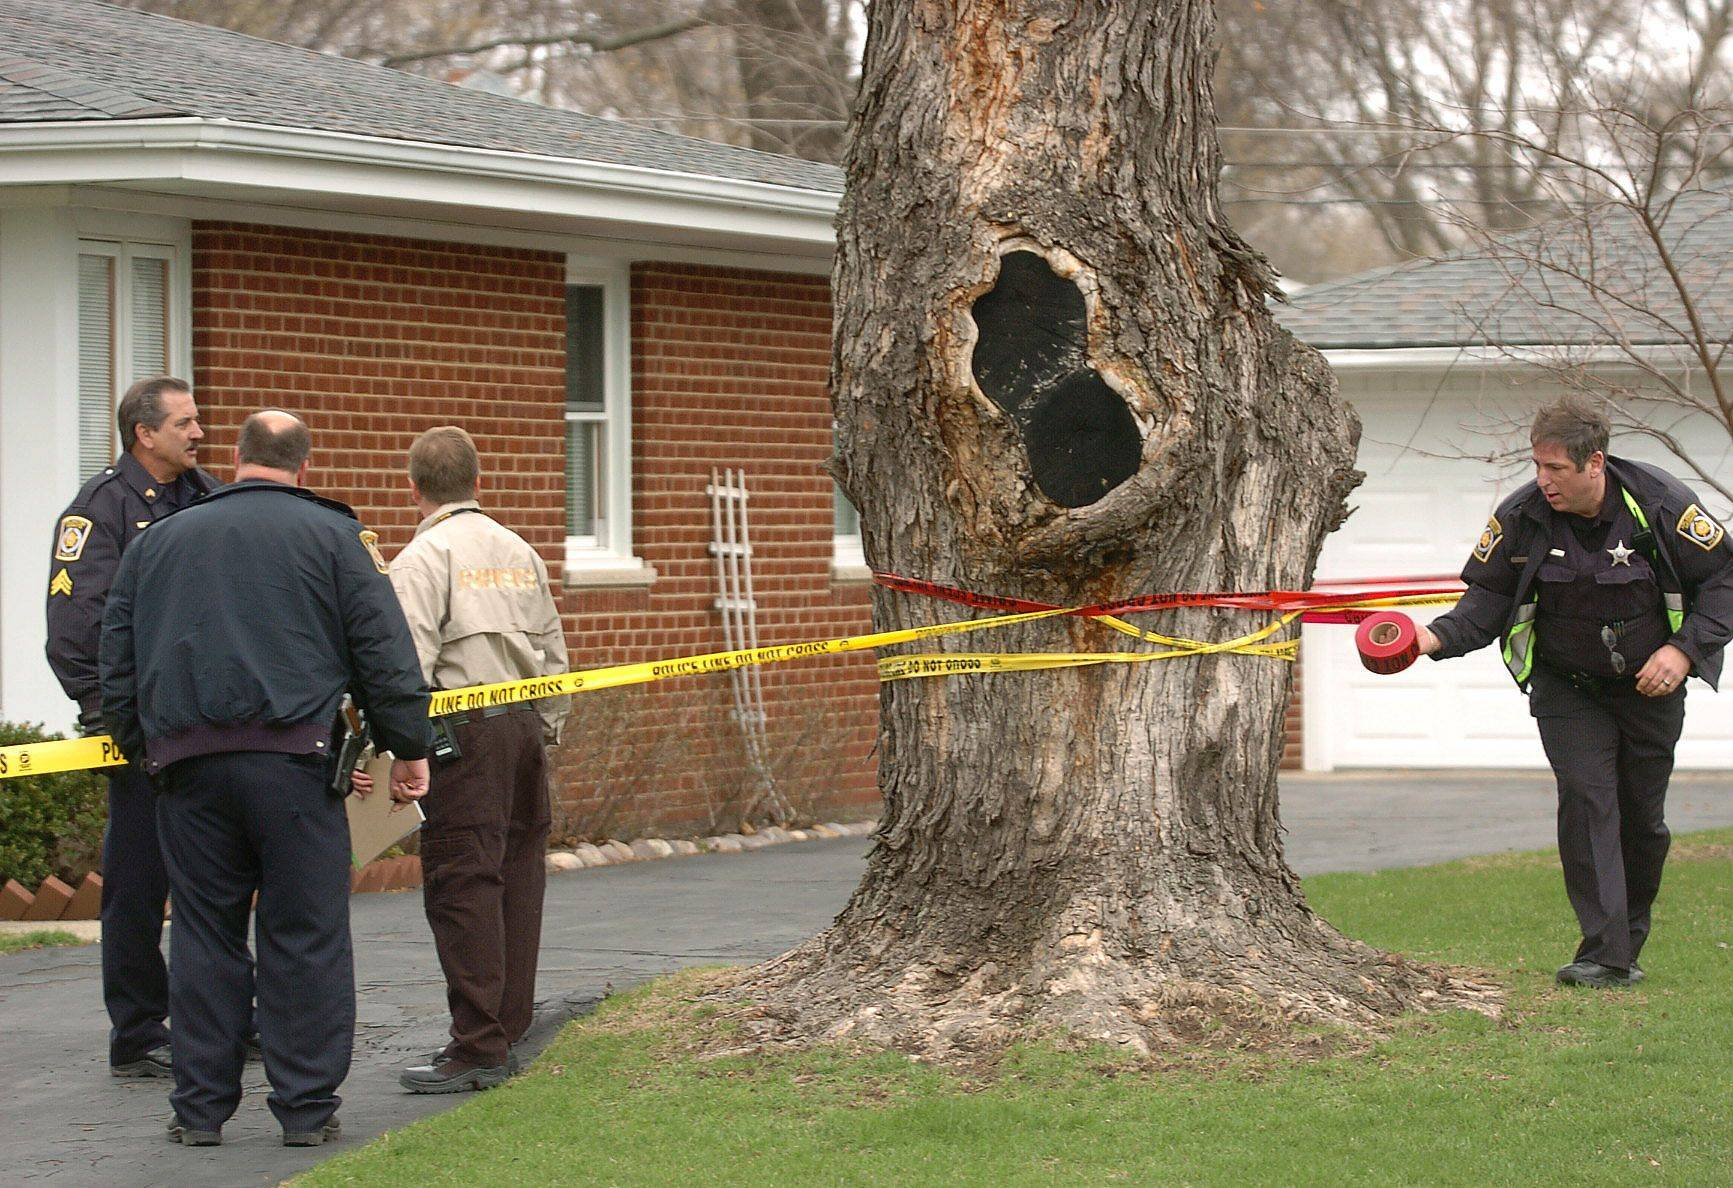 Police conducted a death investigation Thursday after discovering a 55-year-old man dead in his home in the 1000 block of Wilshire Lane in Arlington Heights. The investigation is linked to a high-speed chase that passed through several Northwest suburbs before ending with a man's capture in East Dundee.